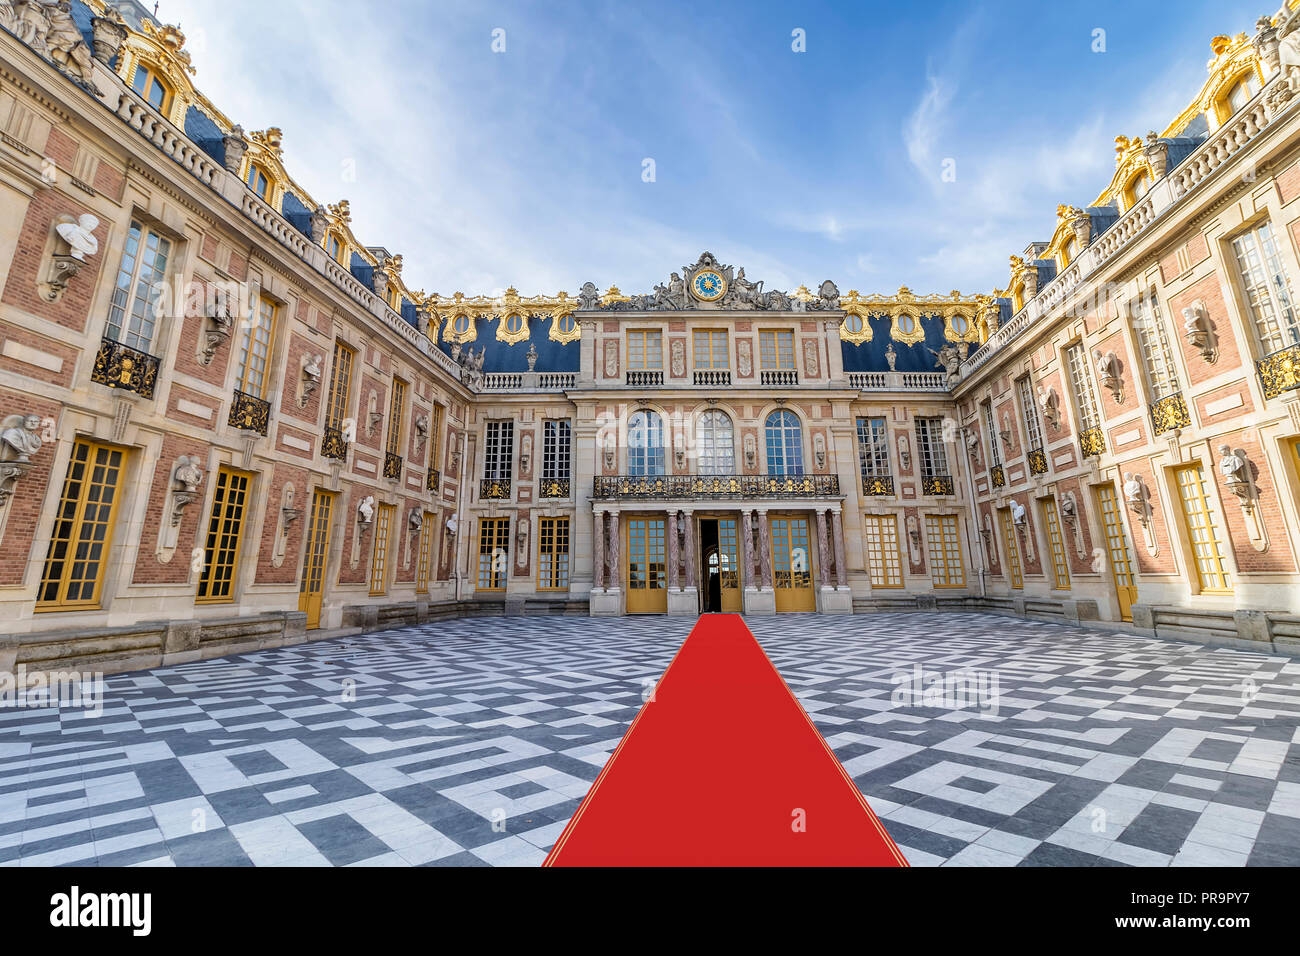 Inside of Chateau de Versailles (Palace of Versailles) near Paris. Palace Versailles was a royal chateau. - Stock Image